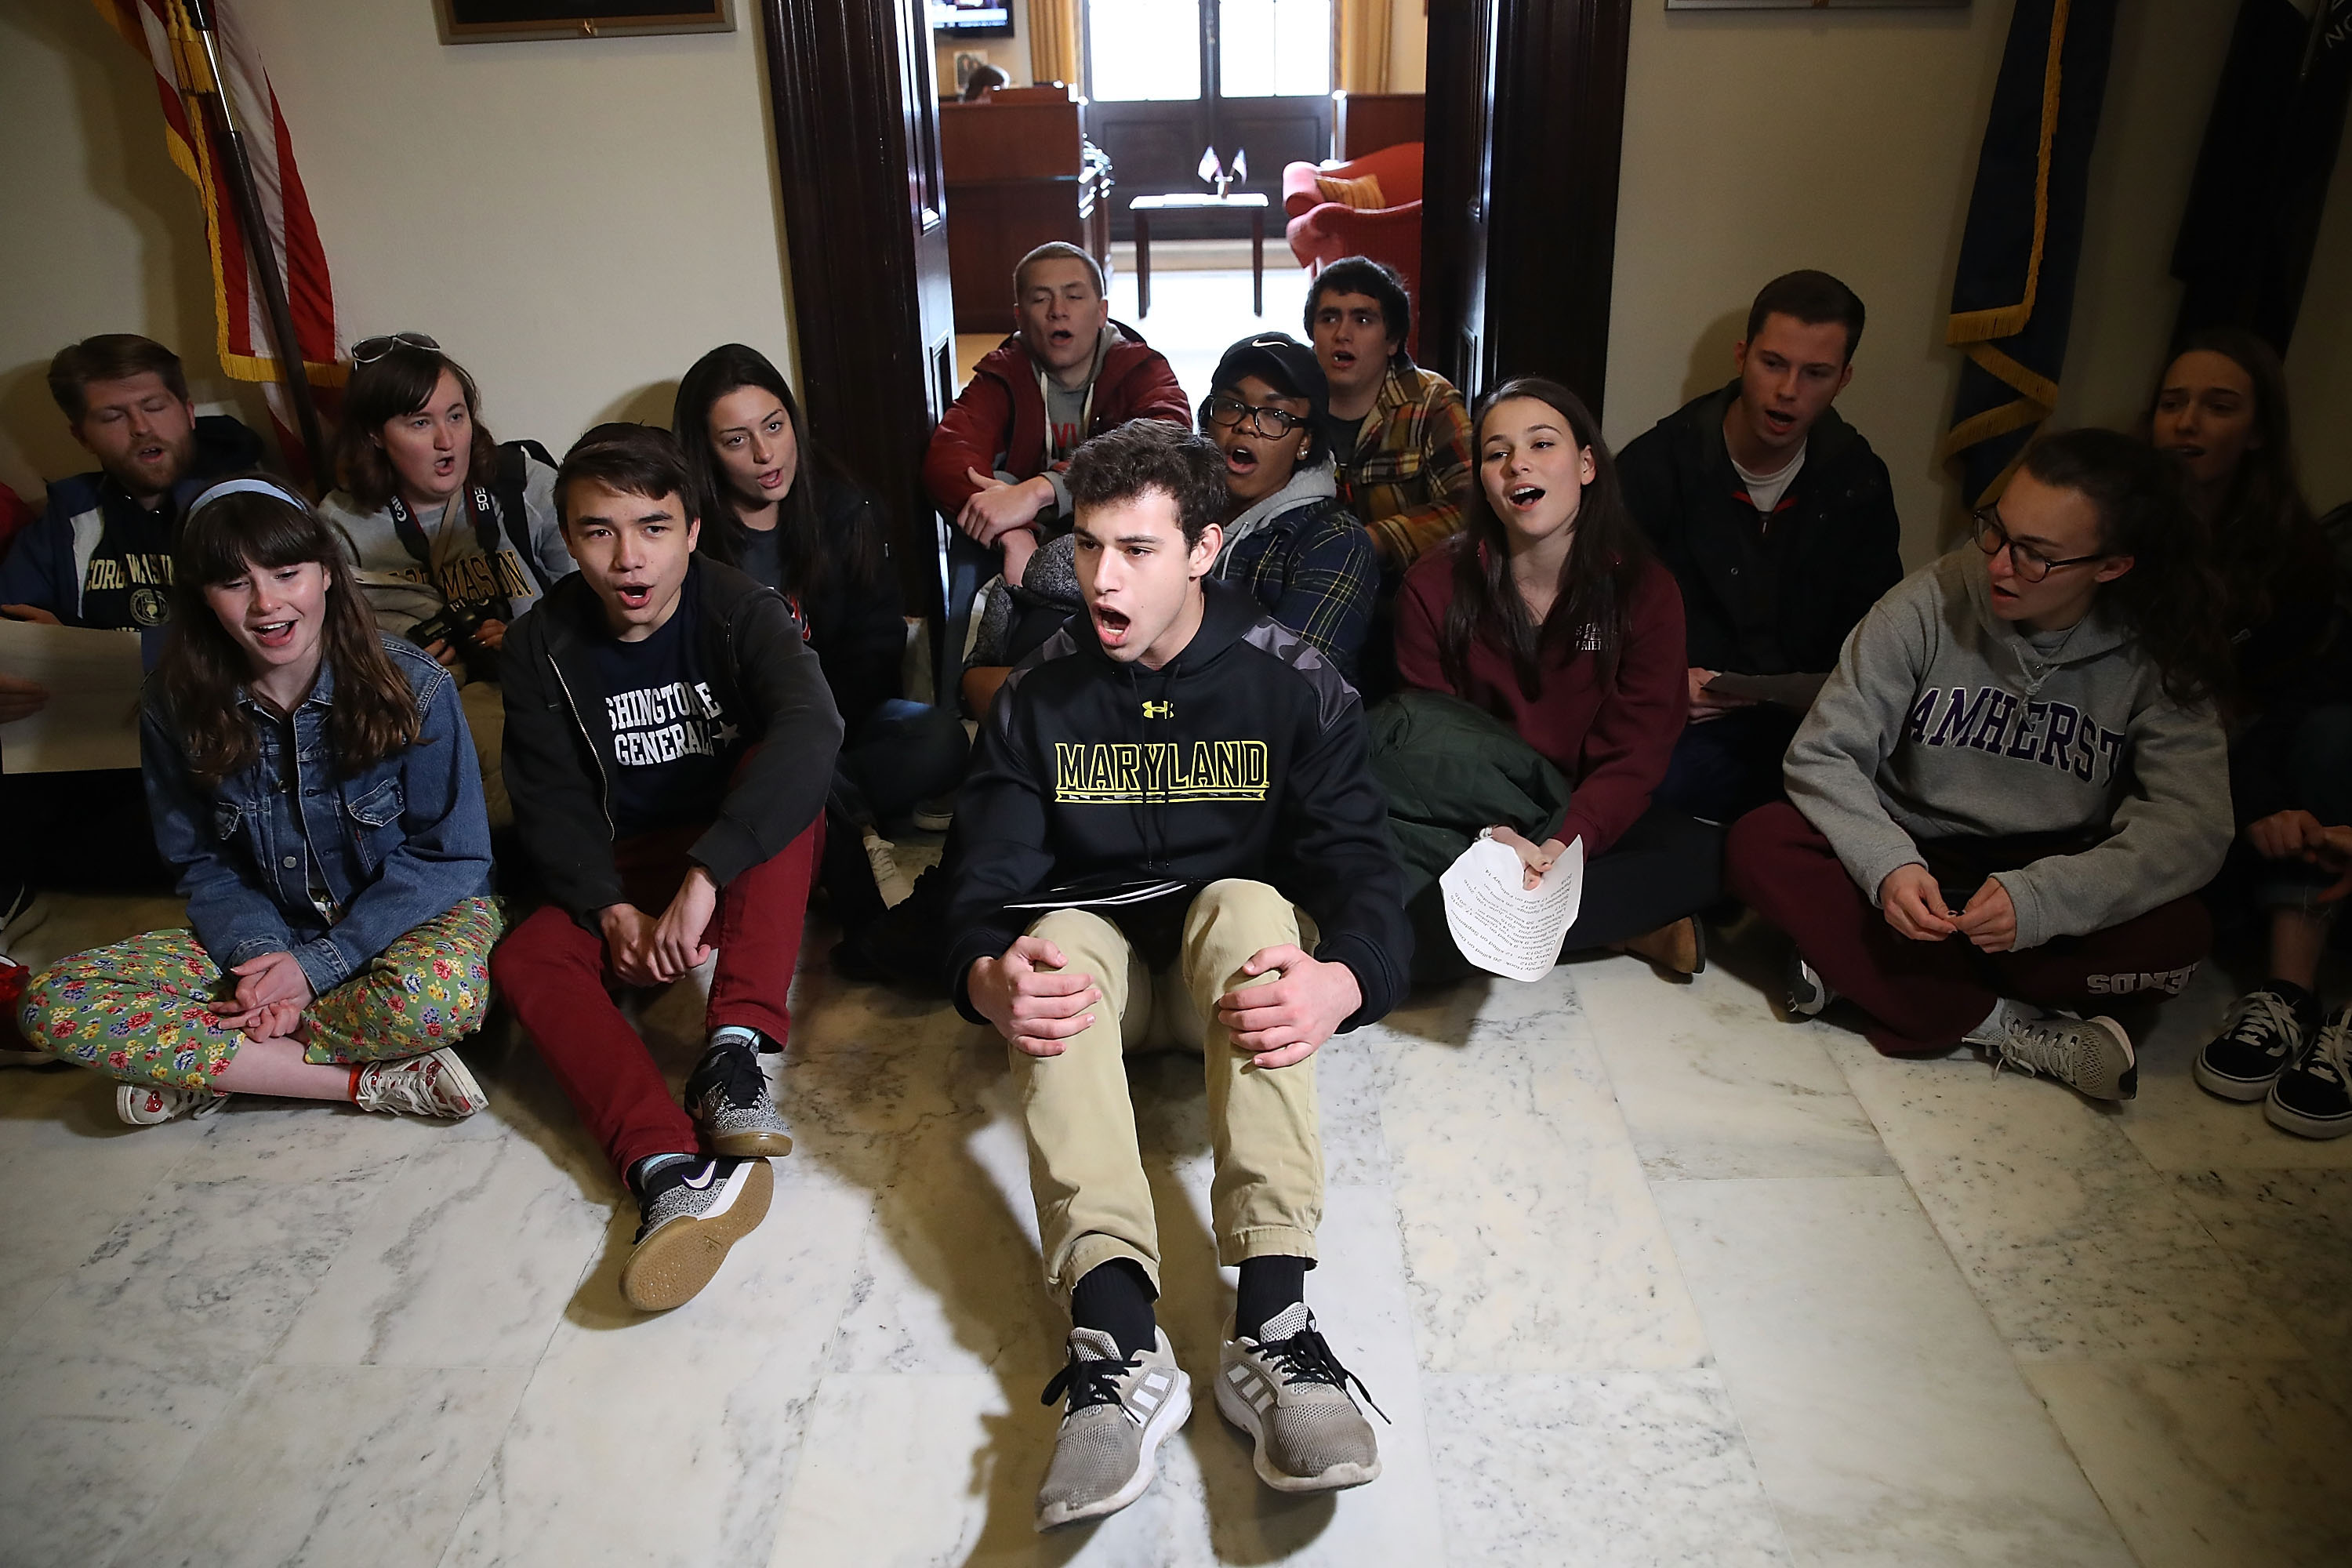 Today, students all over the country took part in 17-minute protests, one minute for each person who died in the high school massacre in Parkland, Florida. In this photo, students protest in front of Senate Majority Leader Mitch McConnell's (R-KY) office to urge Congress into changing gun laws on March 7 in Washington, D.C. (Mark Wilson/Getty Images)